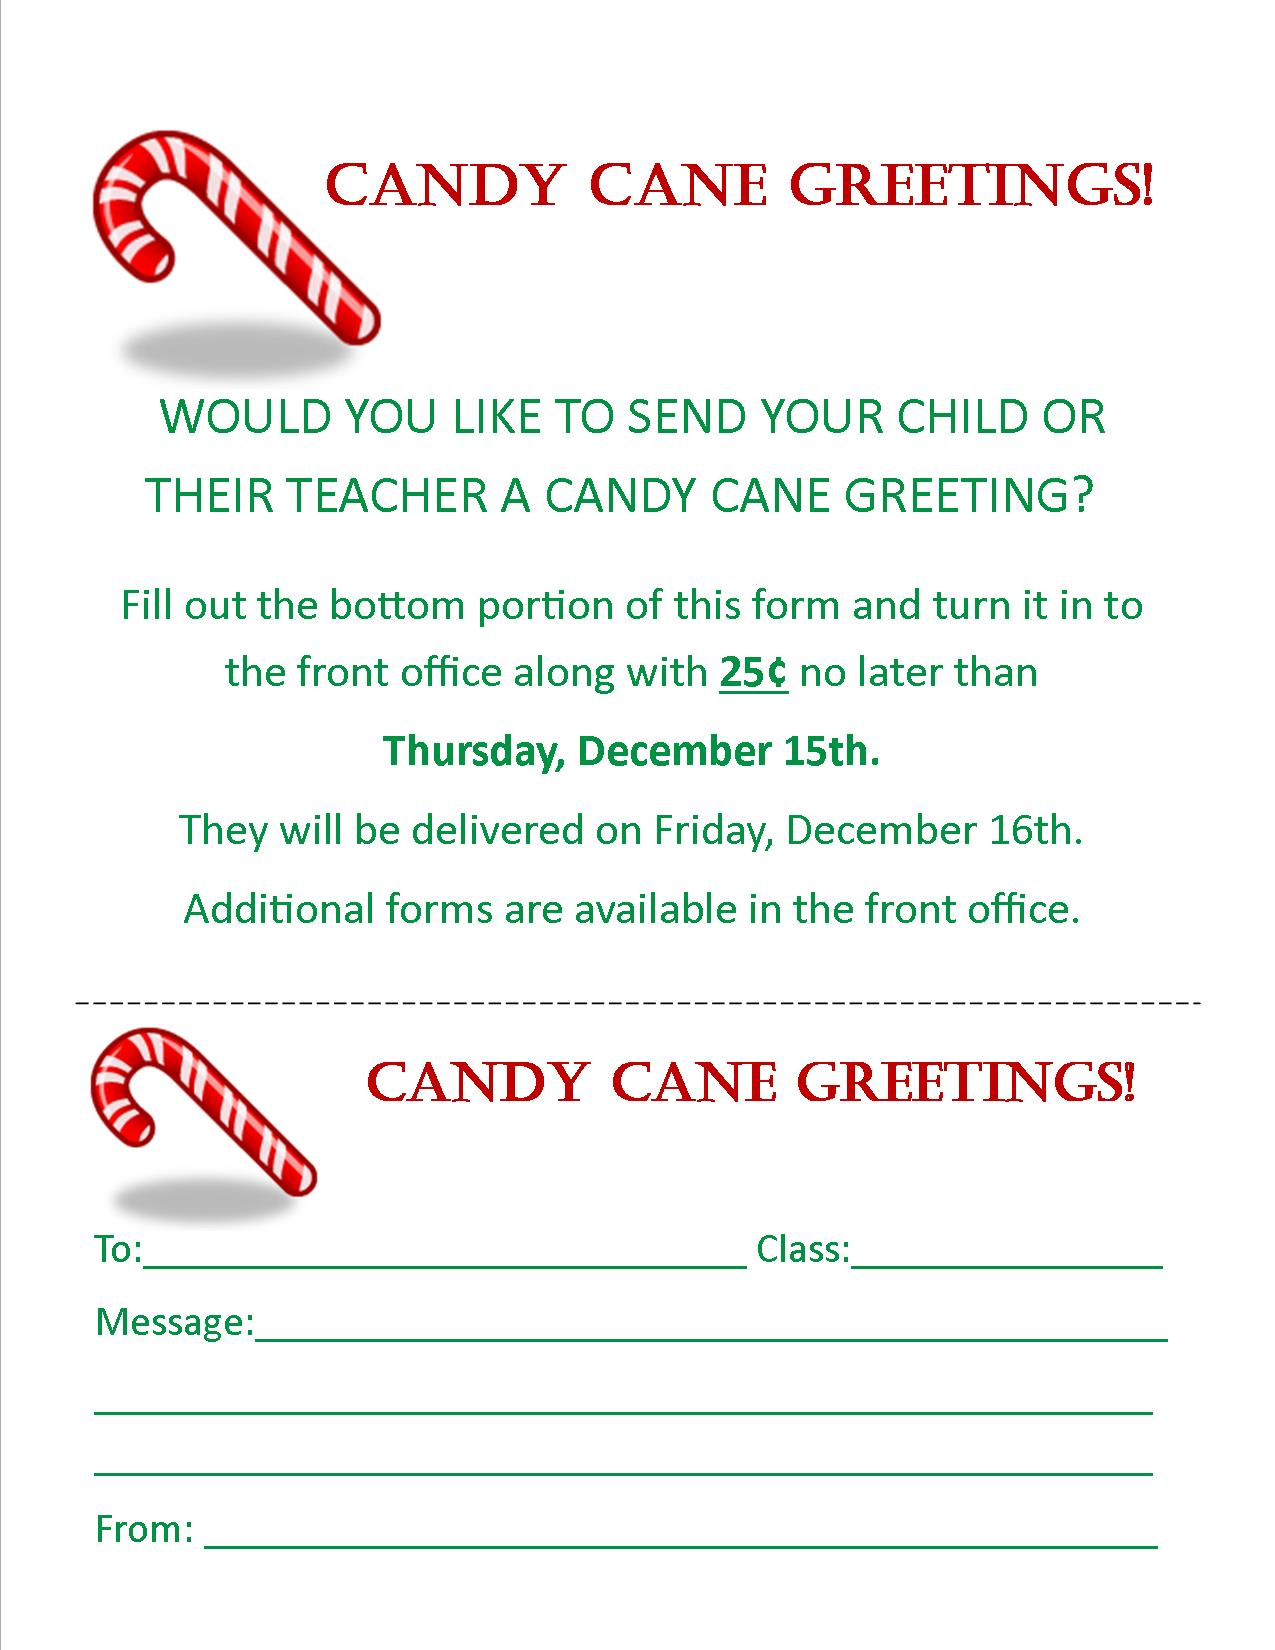 candy-cane-greetings-web